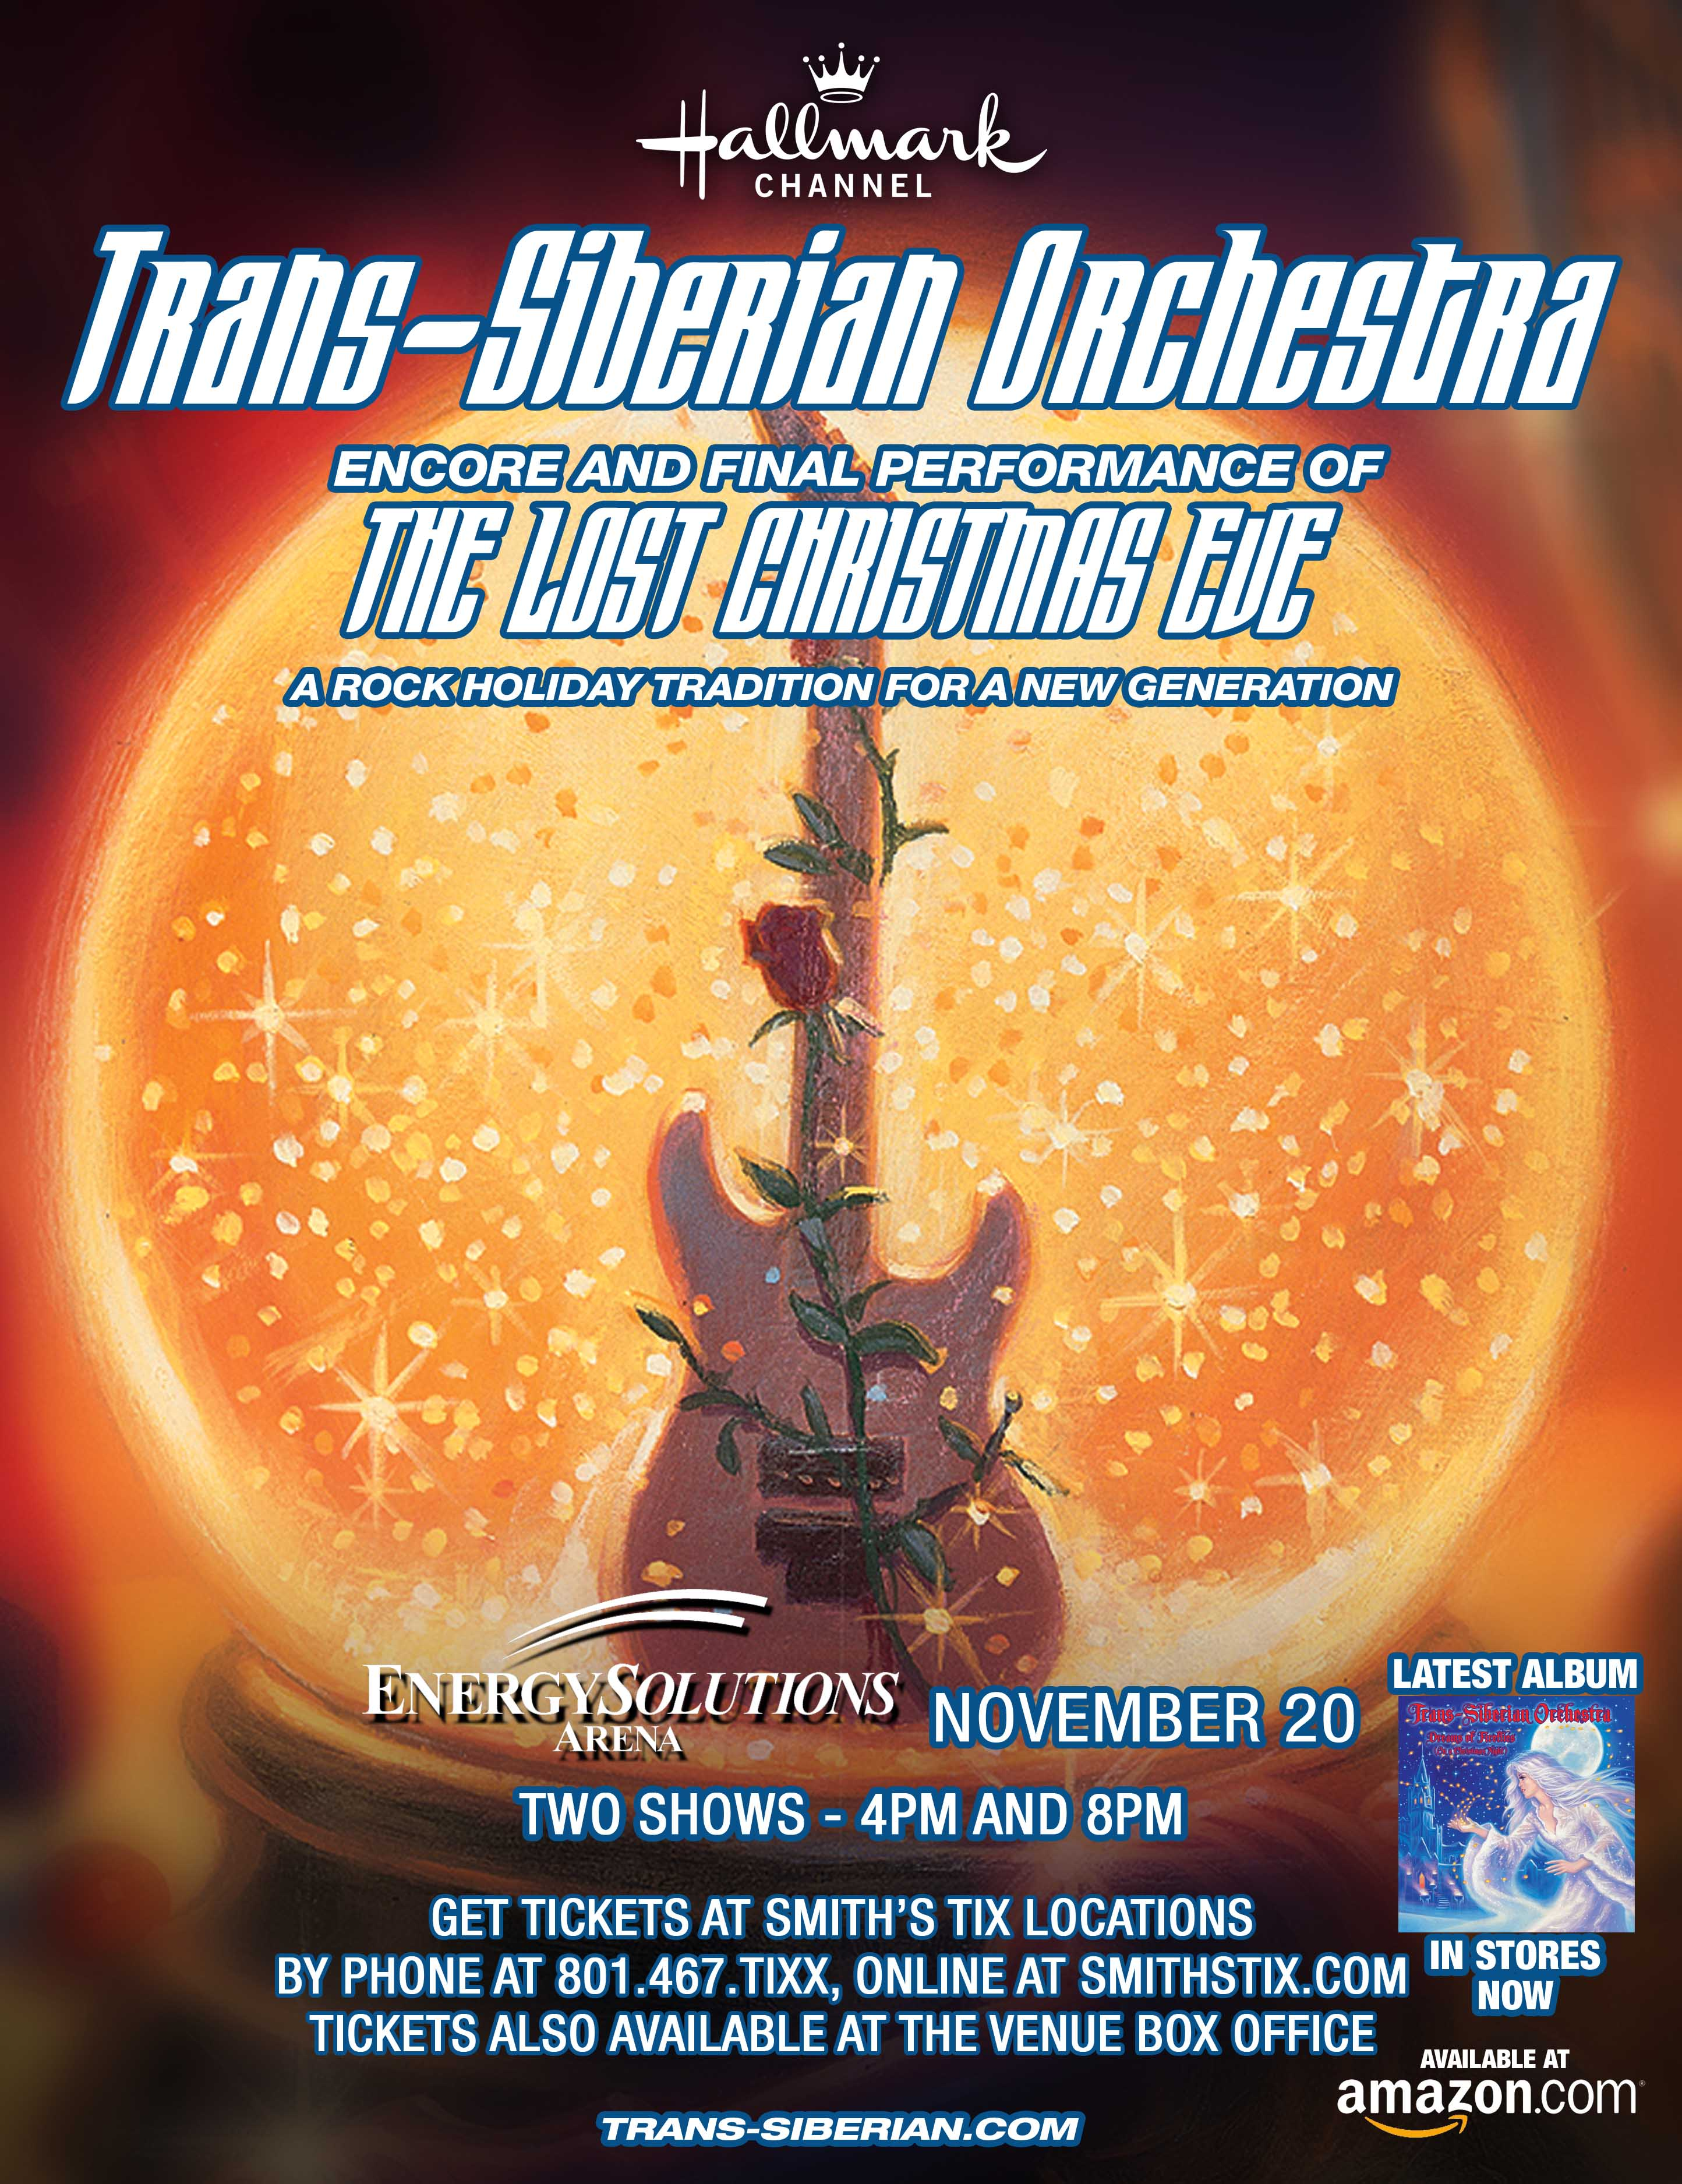 Trans-Siberian Orchestra Tickets 2016 2017 Schedule & Tour Dates